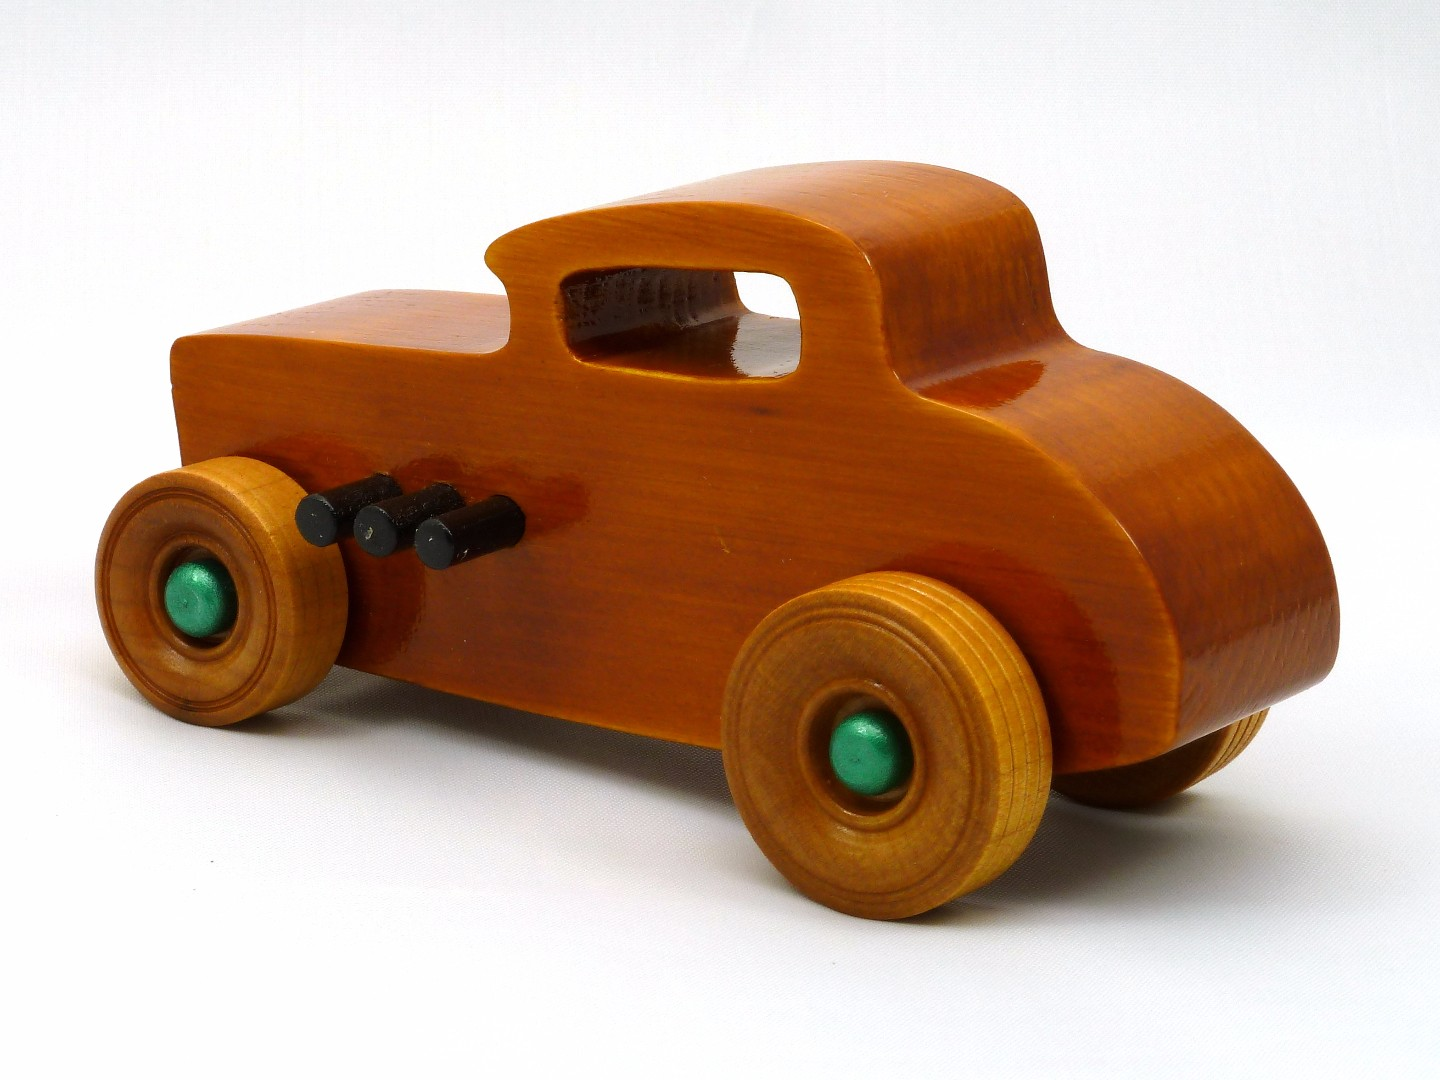 20170902-134230 Wooden Toy Car - Hot Rod Freaky Ford - 32 Deuce Coupe - Pine - Amber Shellac - Metallic Green.jpg